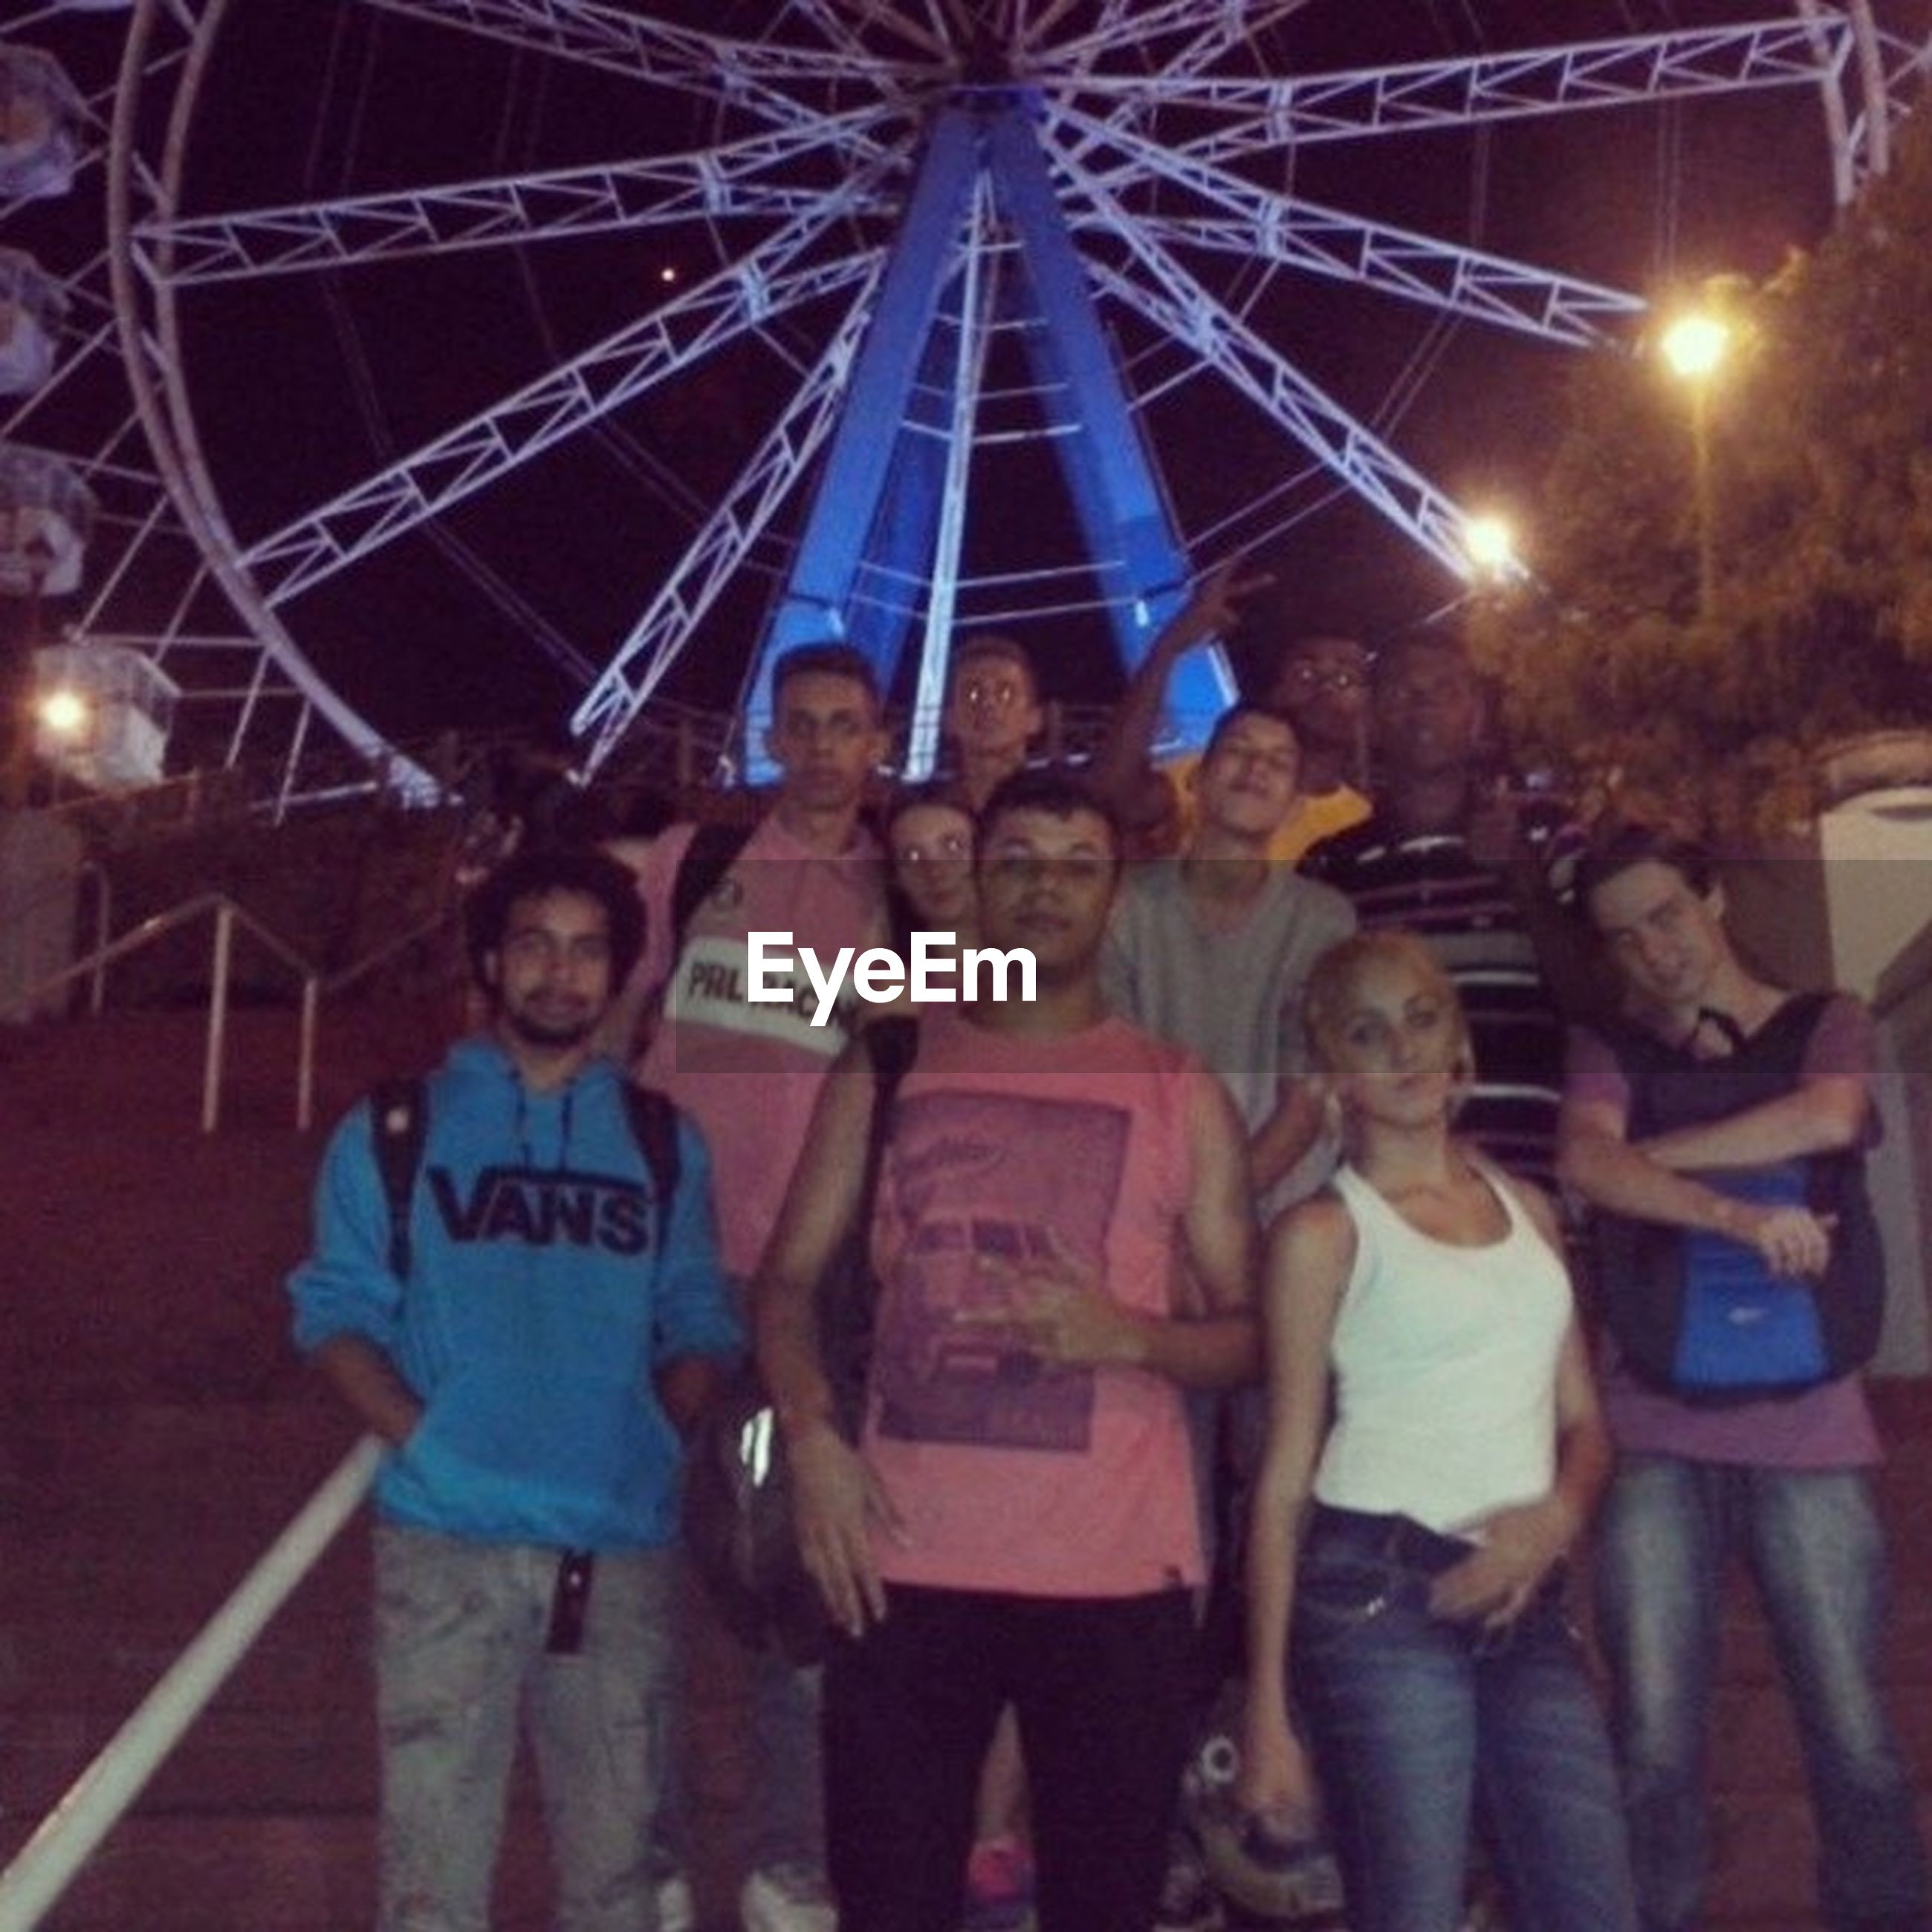 lifestyles, leisure activity, illuminated, arts culture and entertainment, large group of people, men, night, fun, enjoyment, person, amusement park, amusement park ride, togetherness, celebration, standing, event, holding, casual clothing, excitement